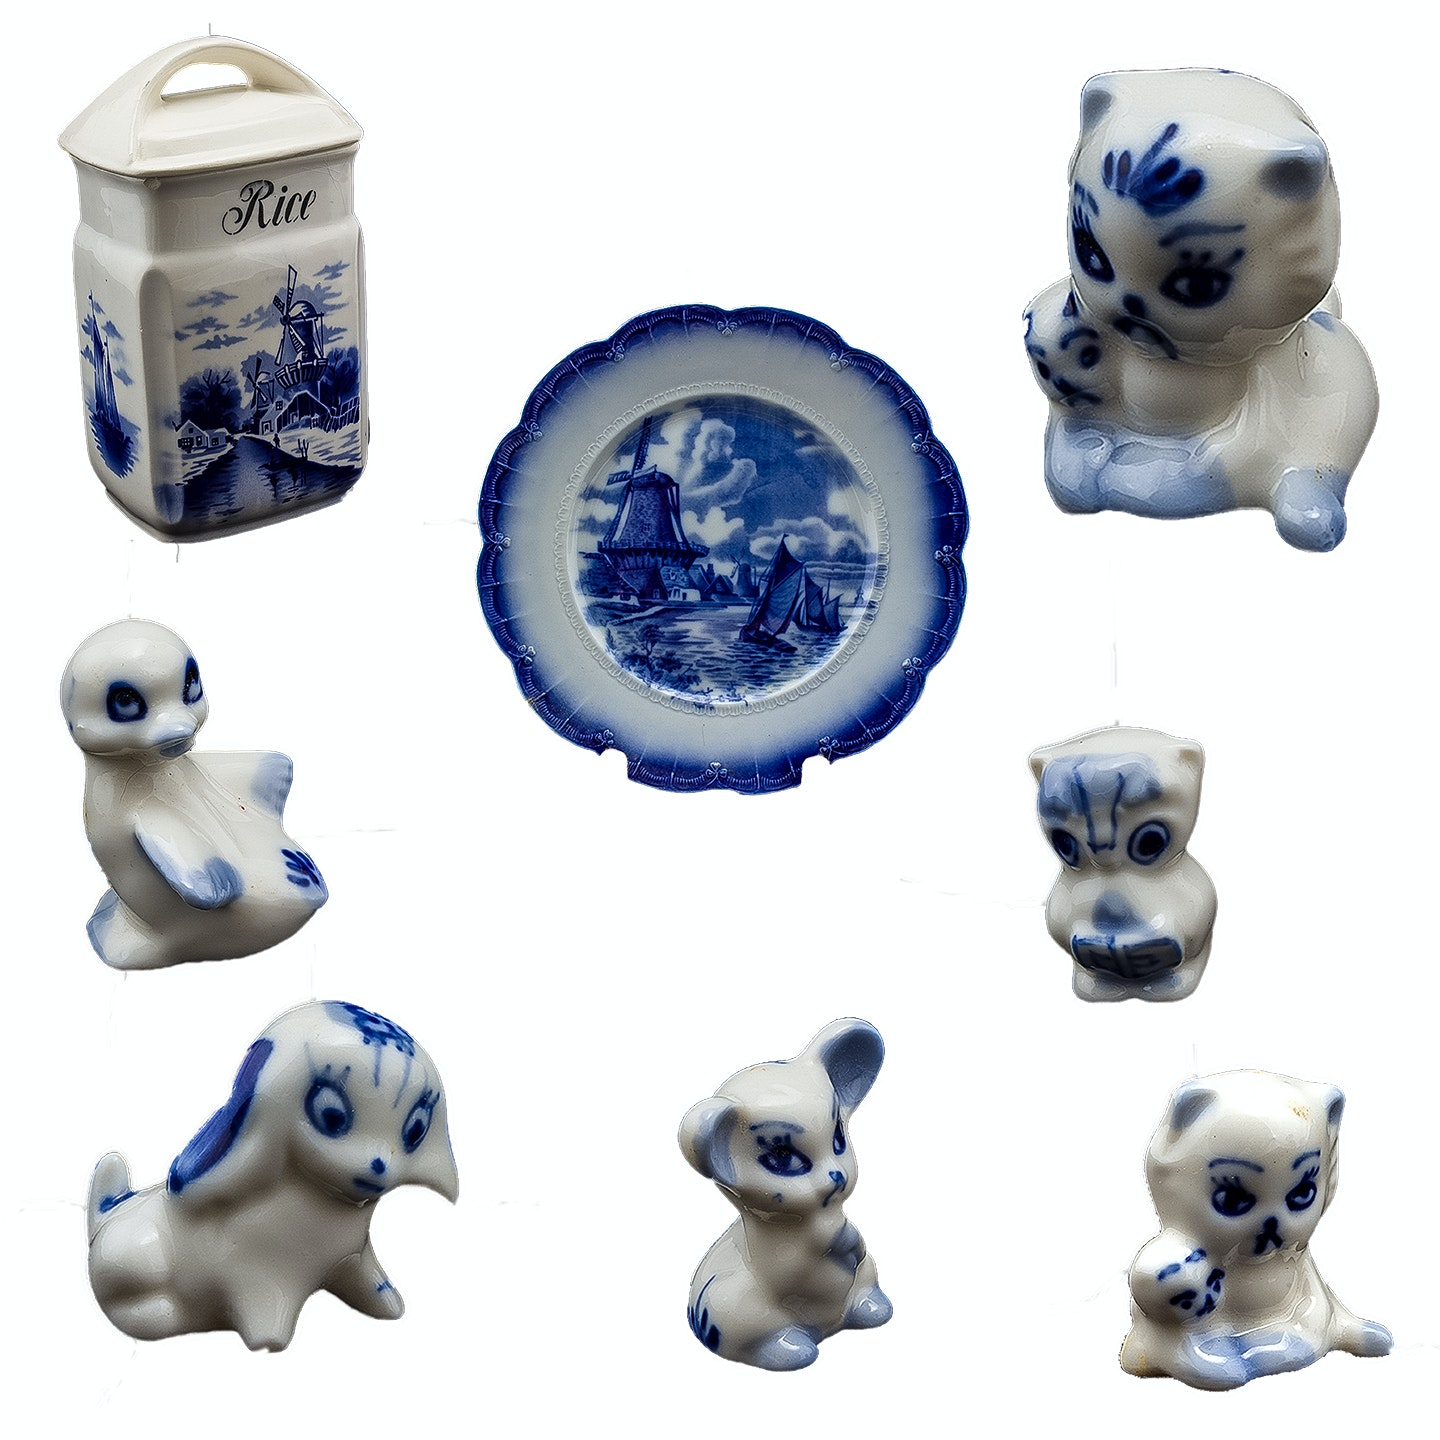 Vintage Delft Canister, Plate and Miniature Ceramic Figurines